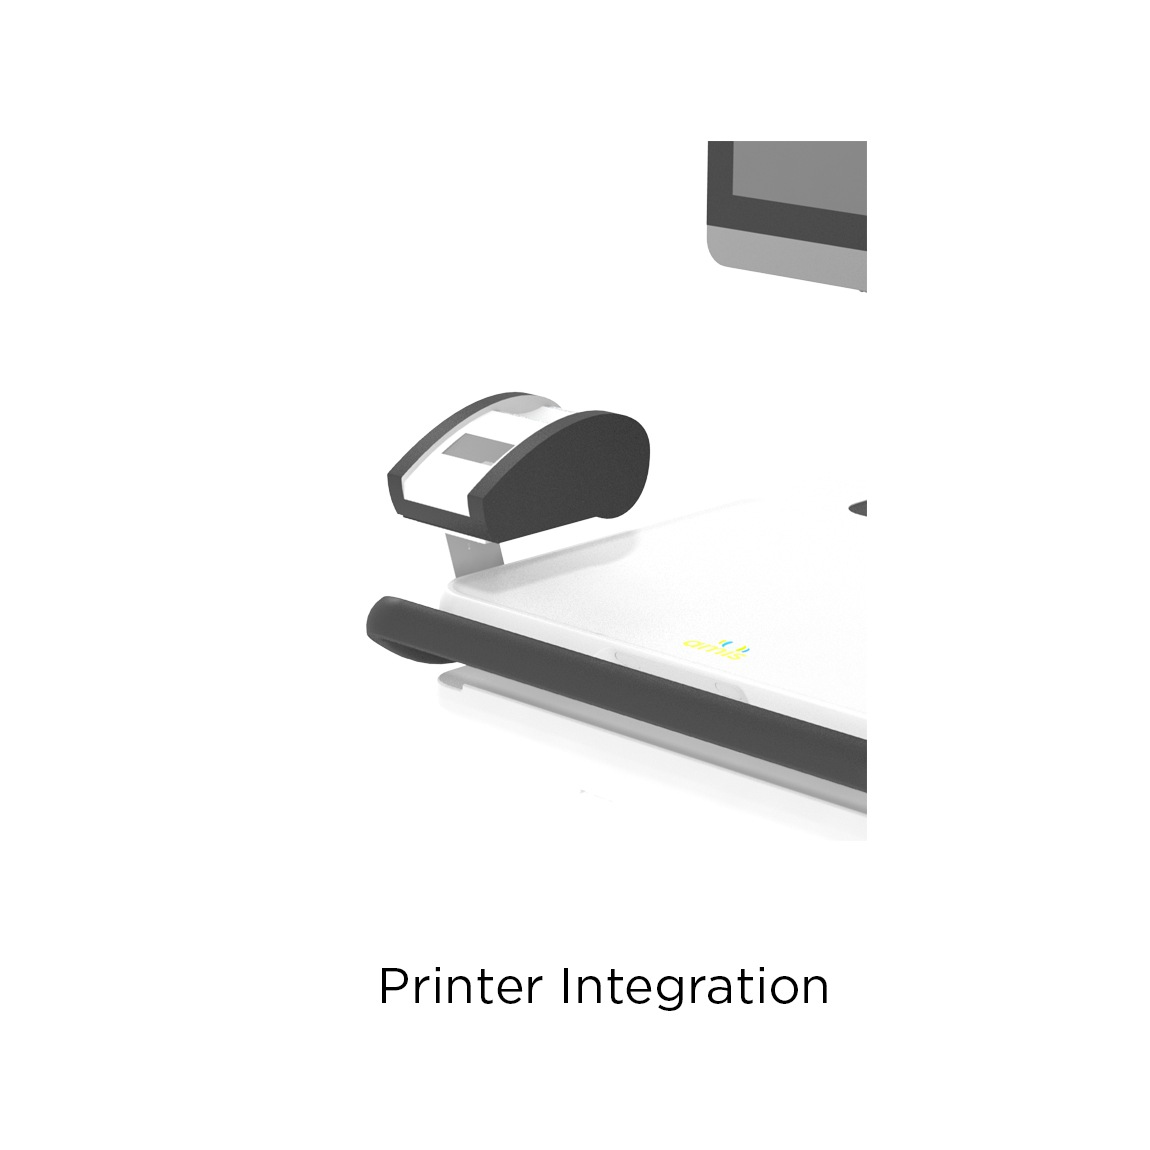 Printer Integration